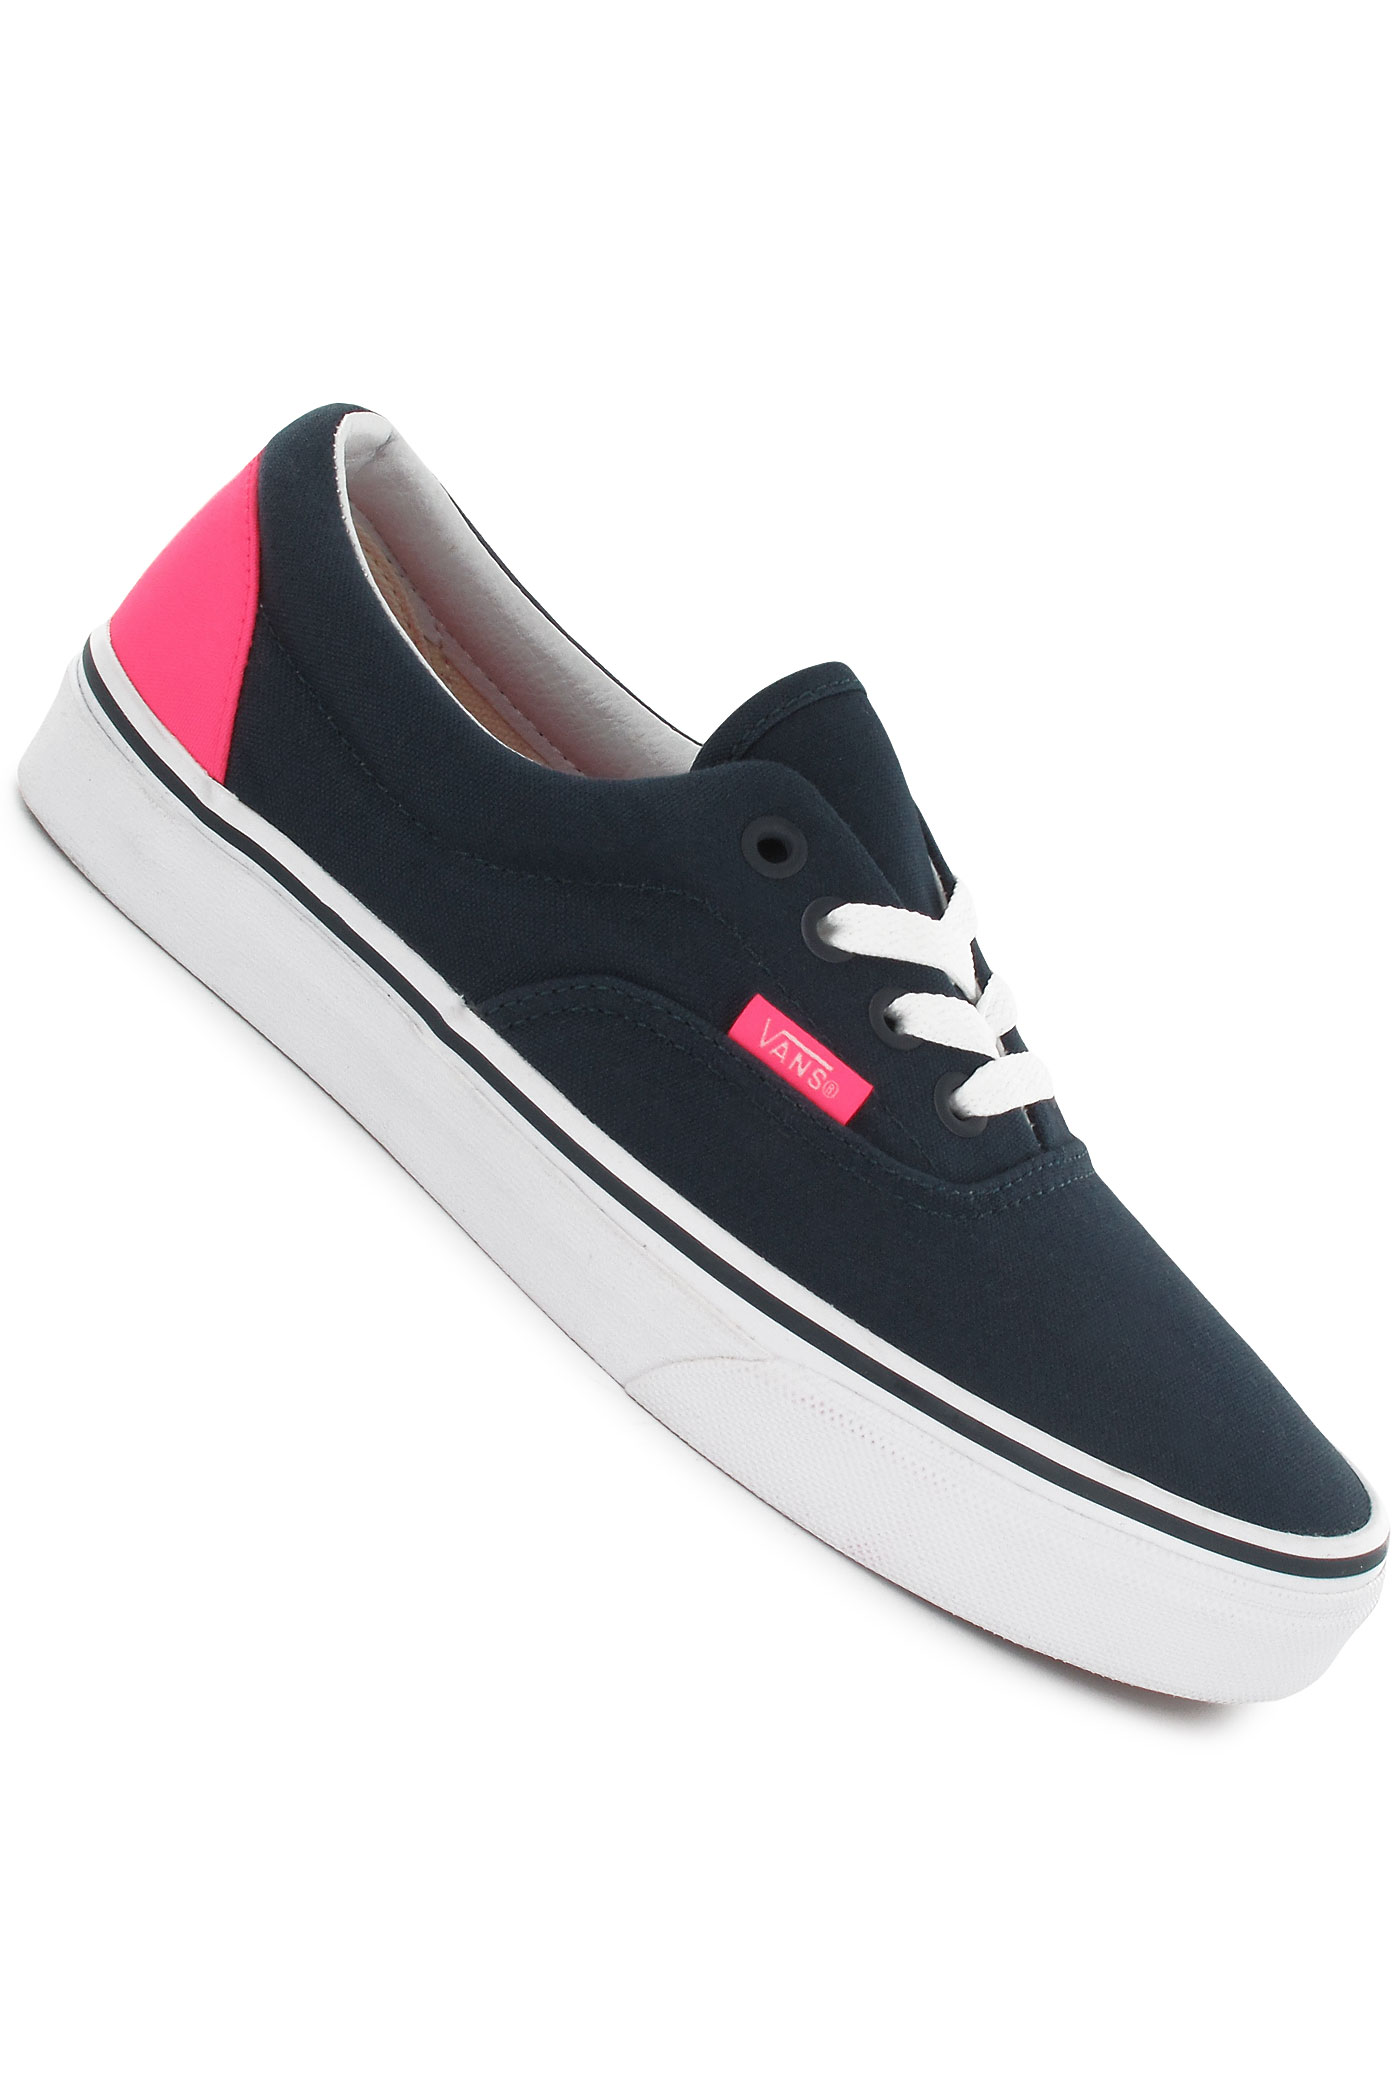 Simple Shoes Skateboard Shoes And Sneakers Vans Authentic Shoe Women Neon